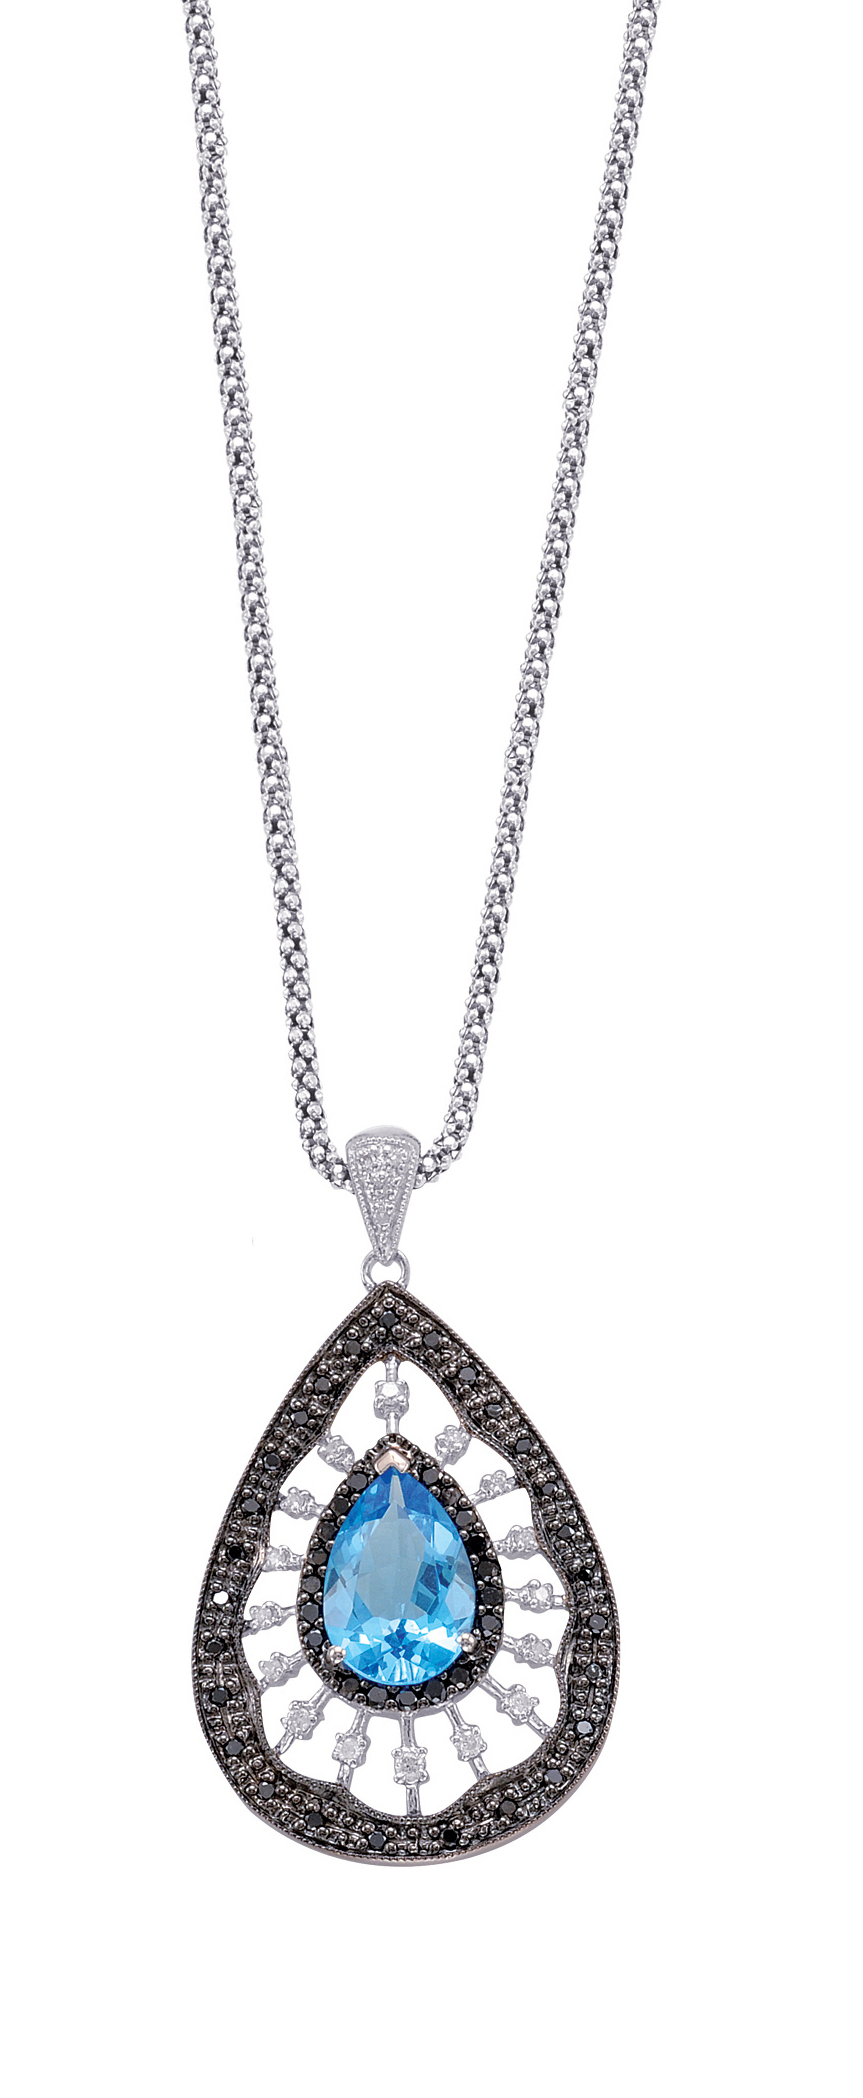 Alesandro Menegati Sterling Silver Necklace with Black and White Diamonds and Blue Topaz. Price: $649.00